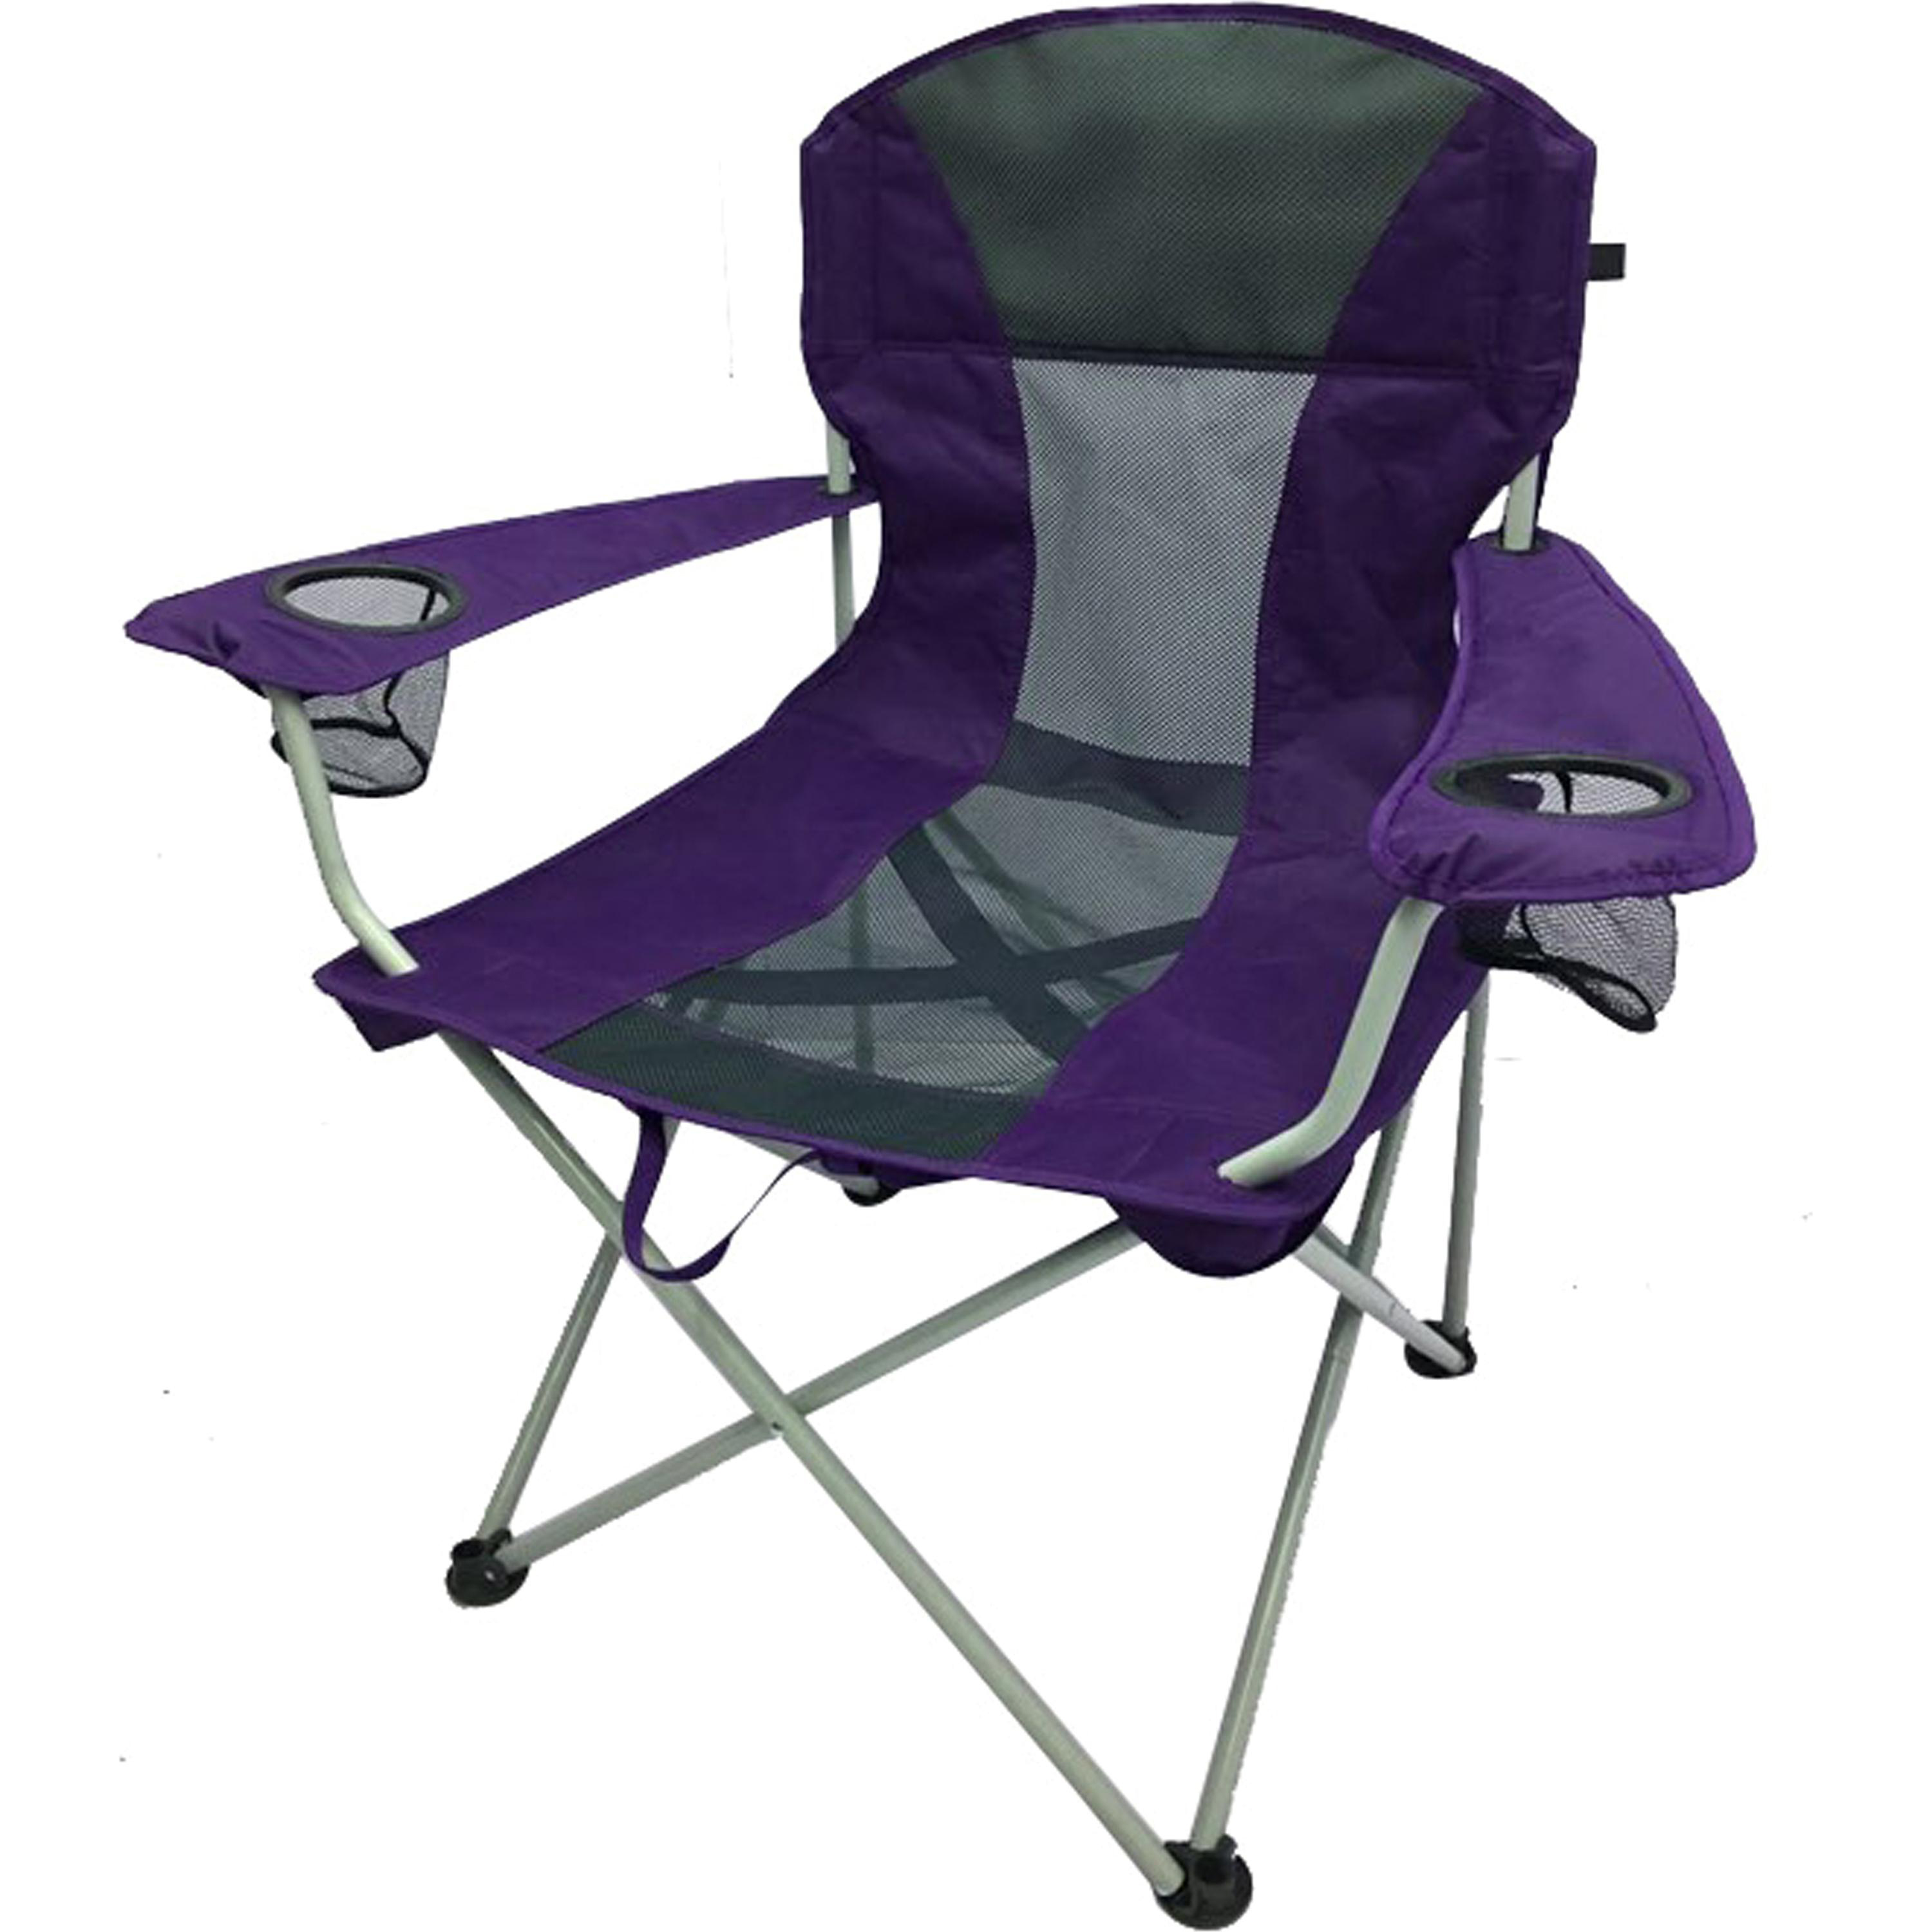 lewis and clark camping chairs french side ozark trail oversize mesh quad chair